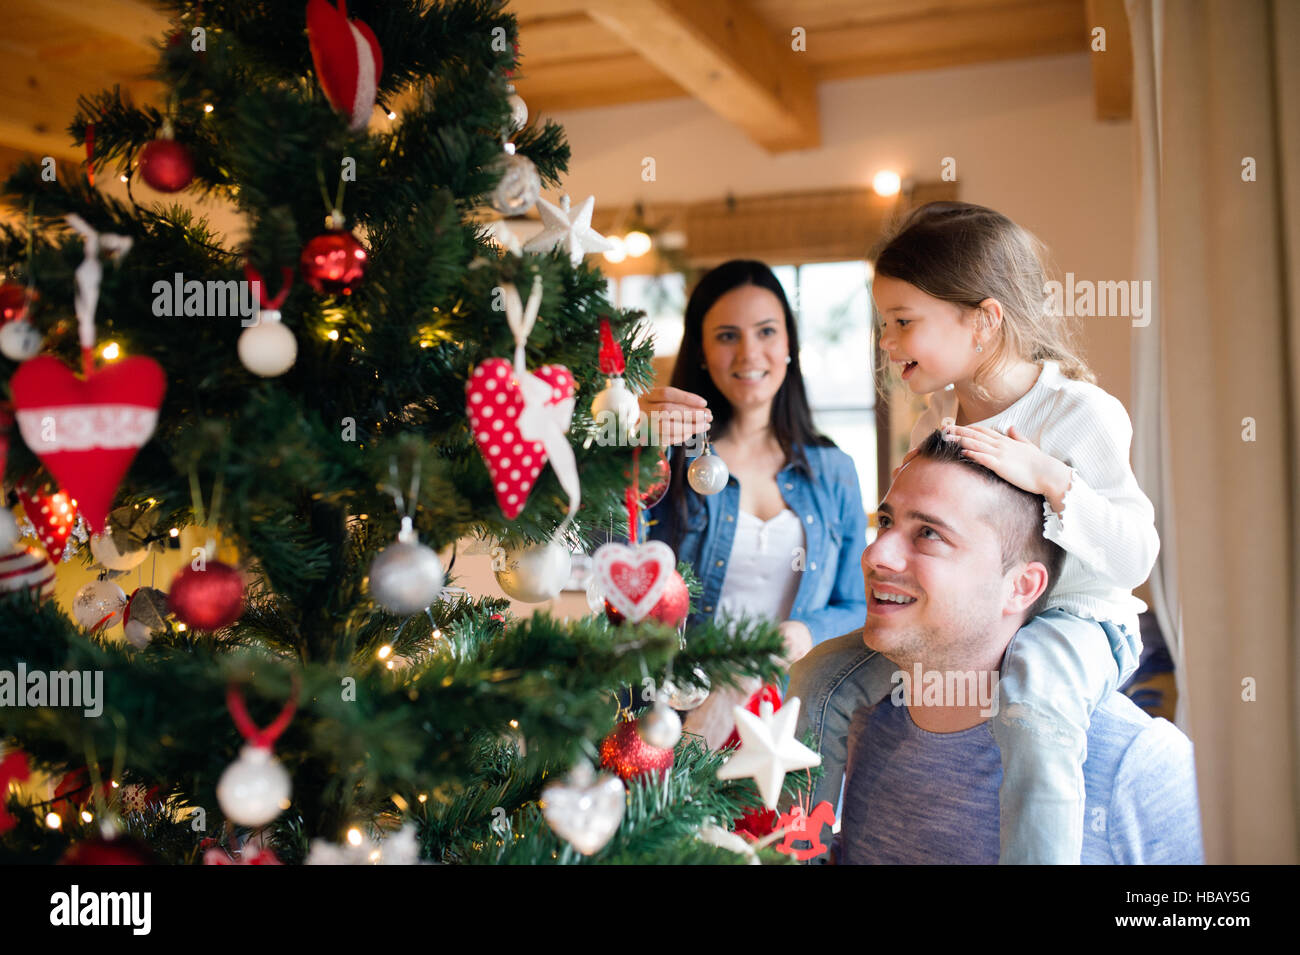 Young family with daugter at Christmas tree at home. - Stock Image